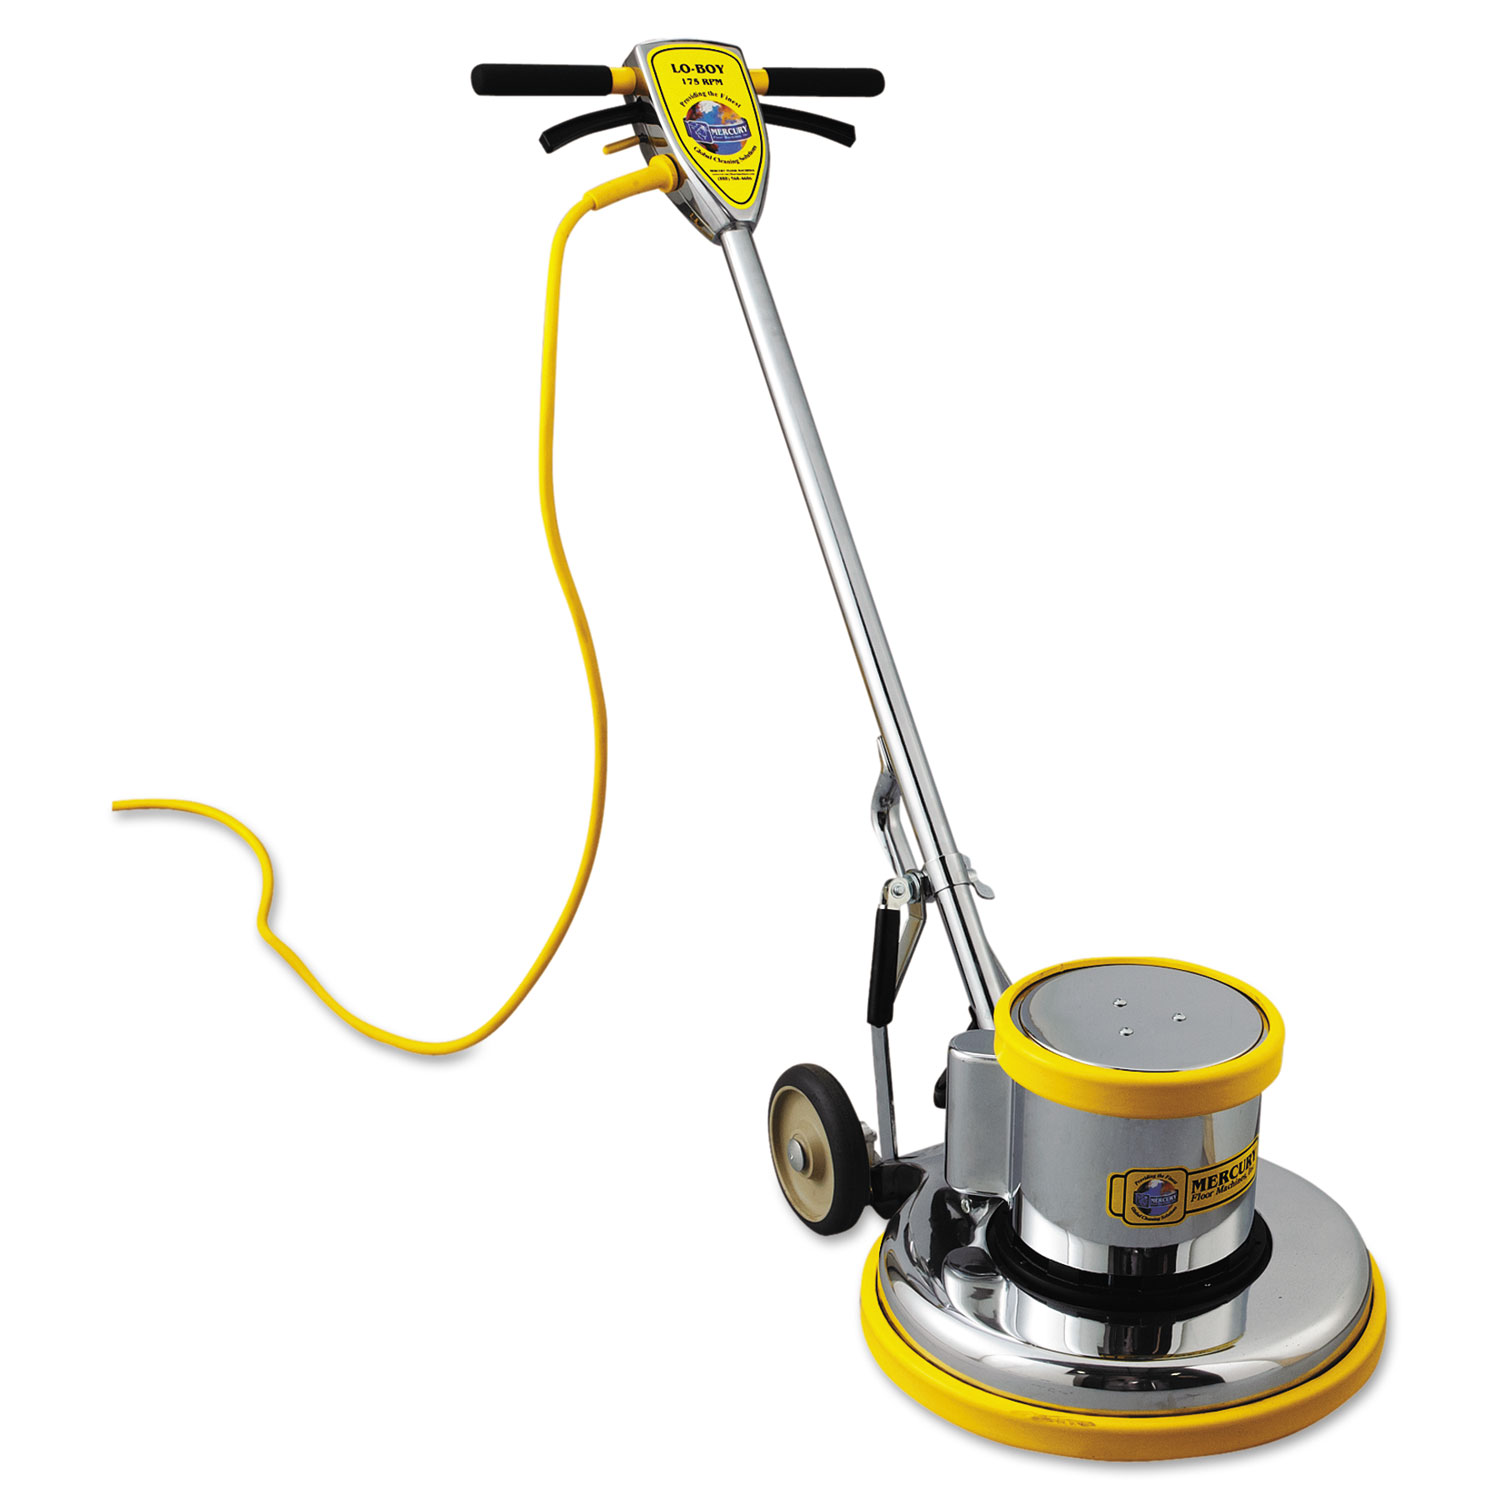 PRO-175-17 Floor Machine, 1.5 HP, 175 RPM, 16 Brush Diameter